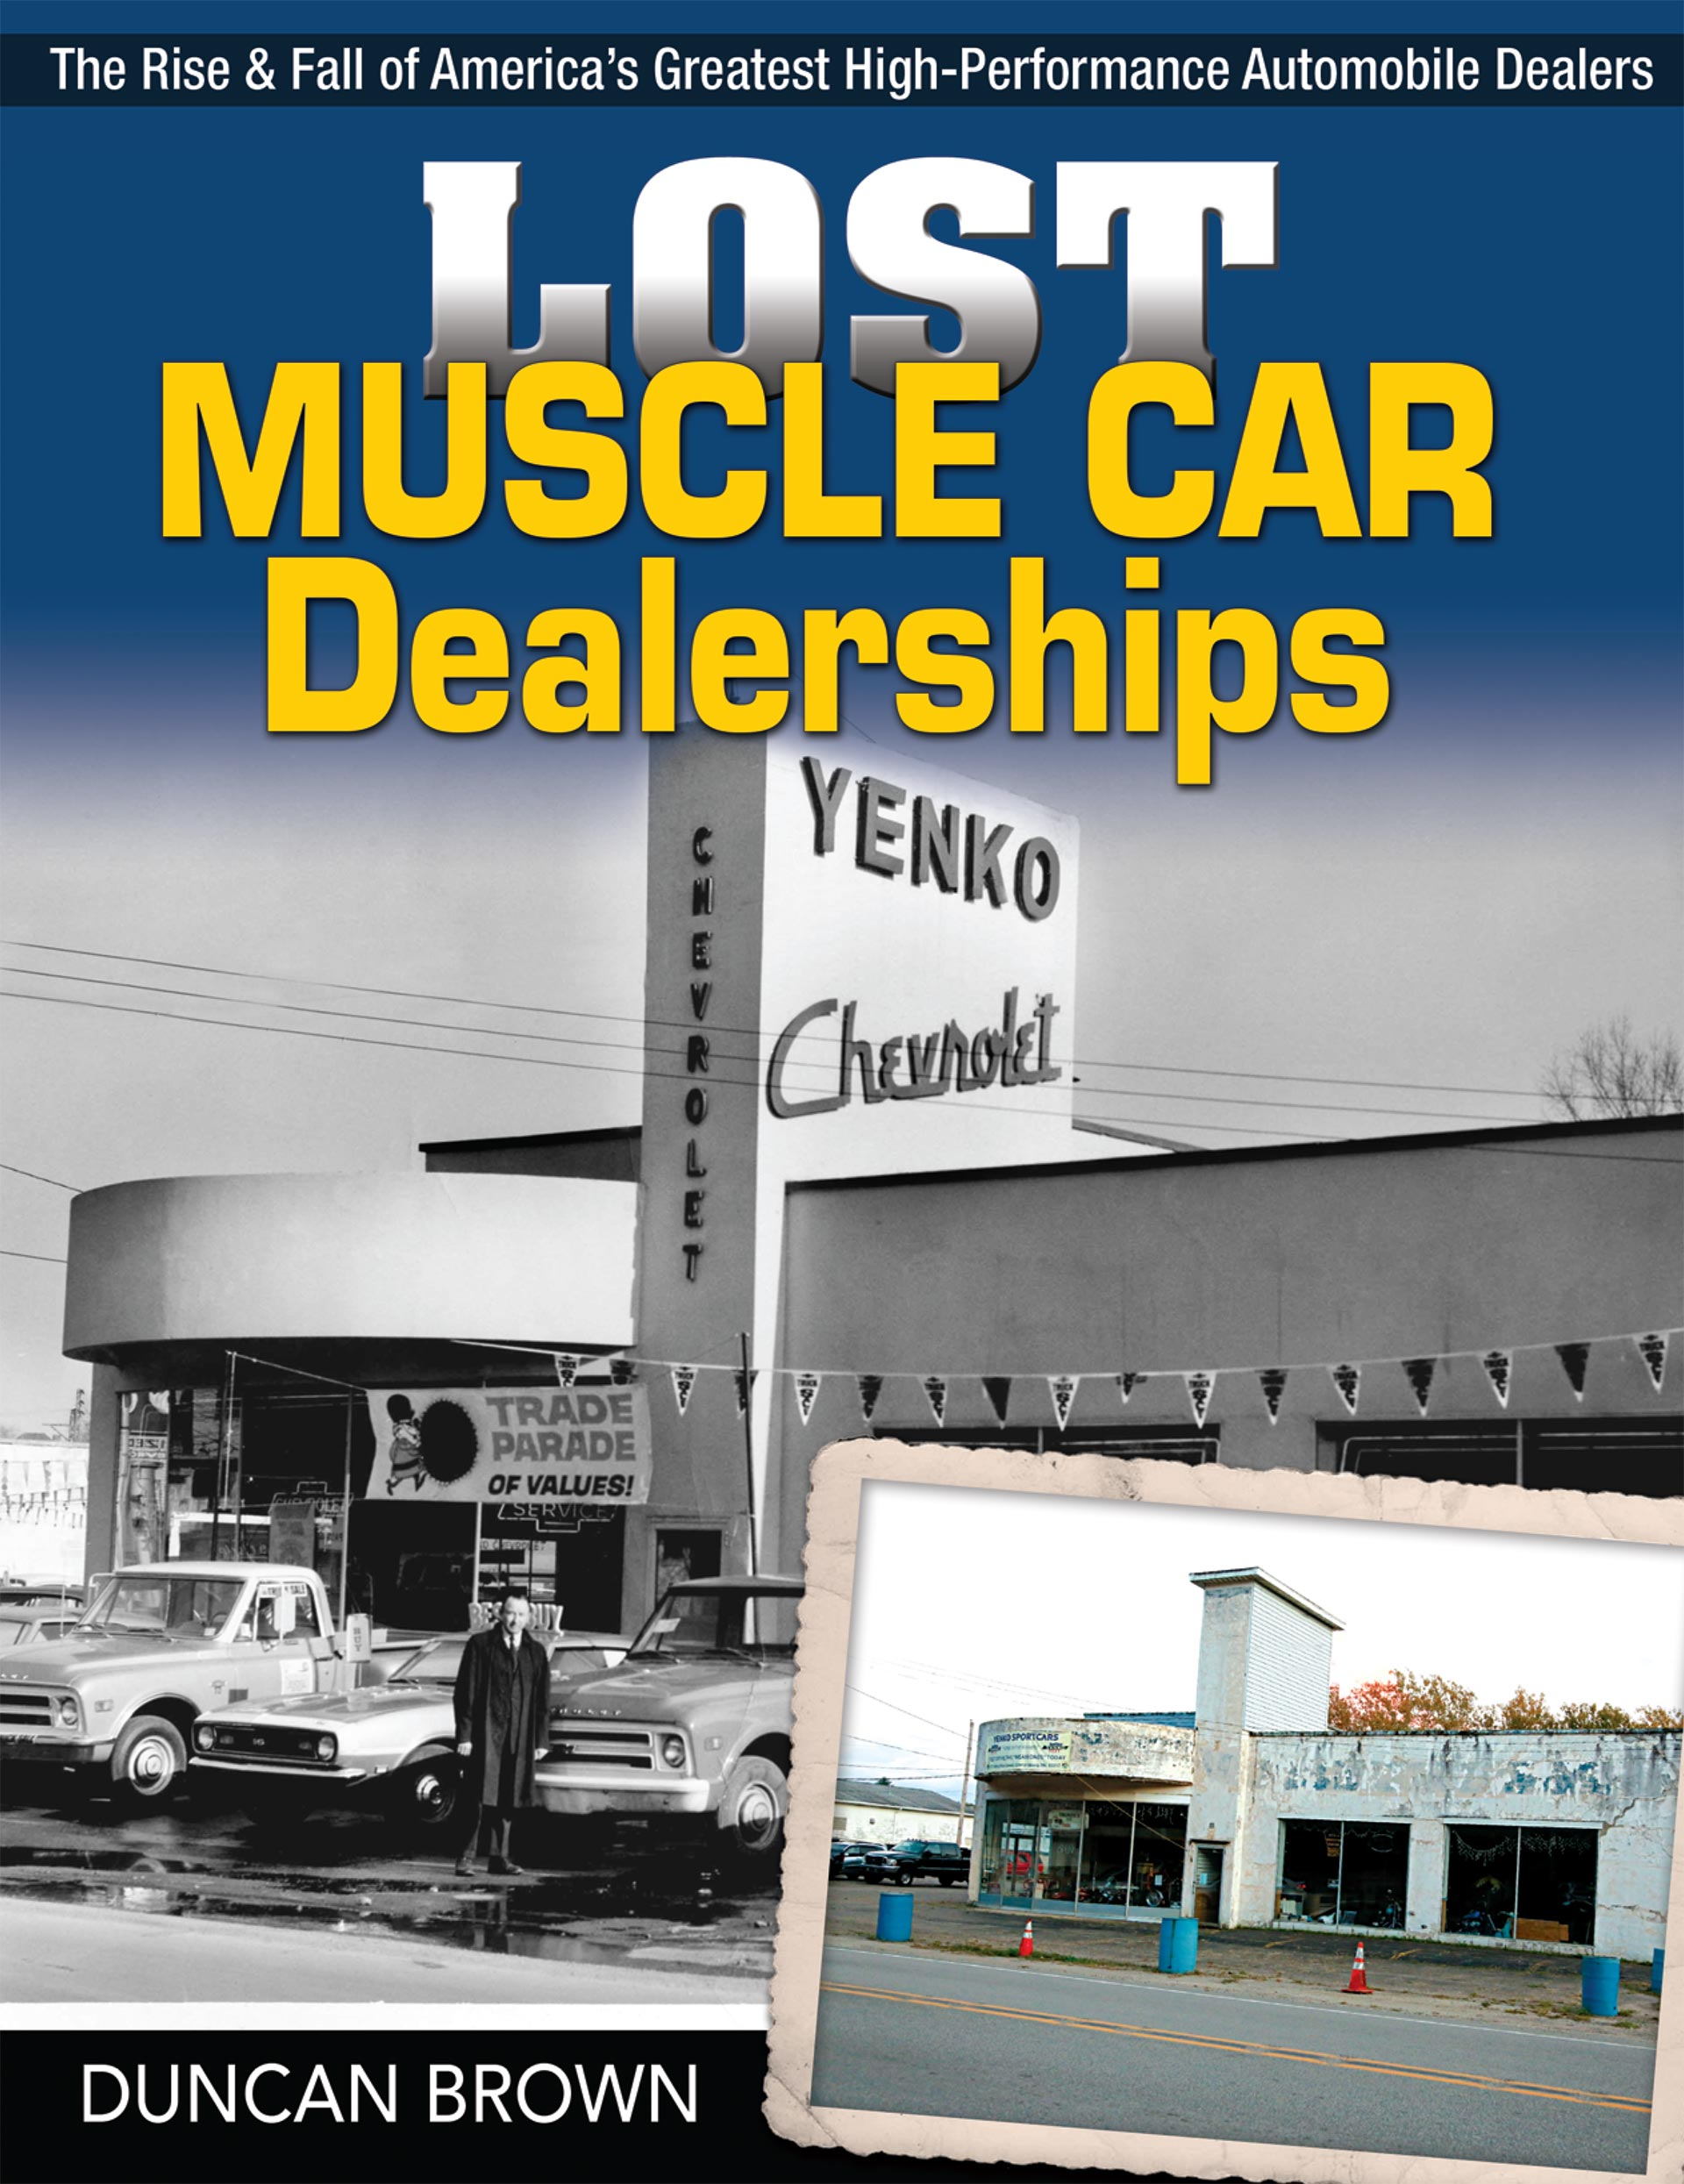 CarTech book titled Lost Muscle Car Dealerships by Duncan Brown